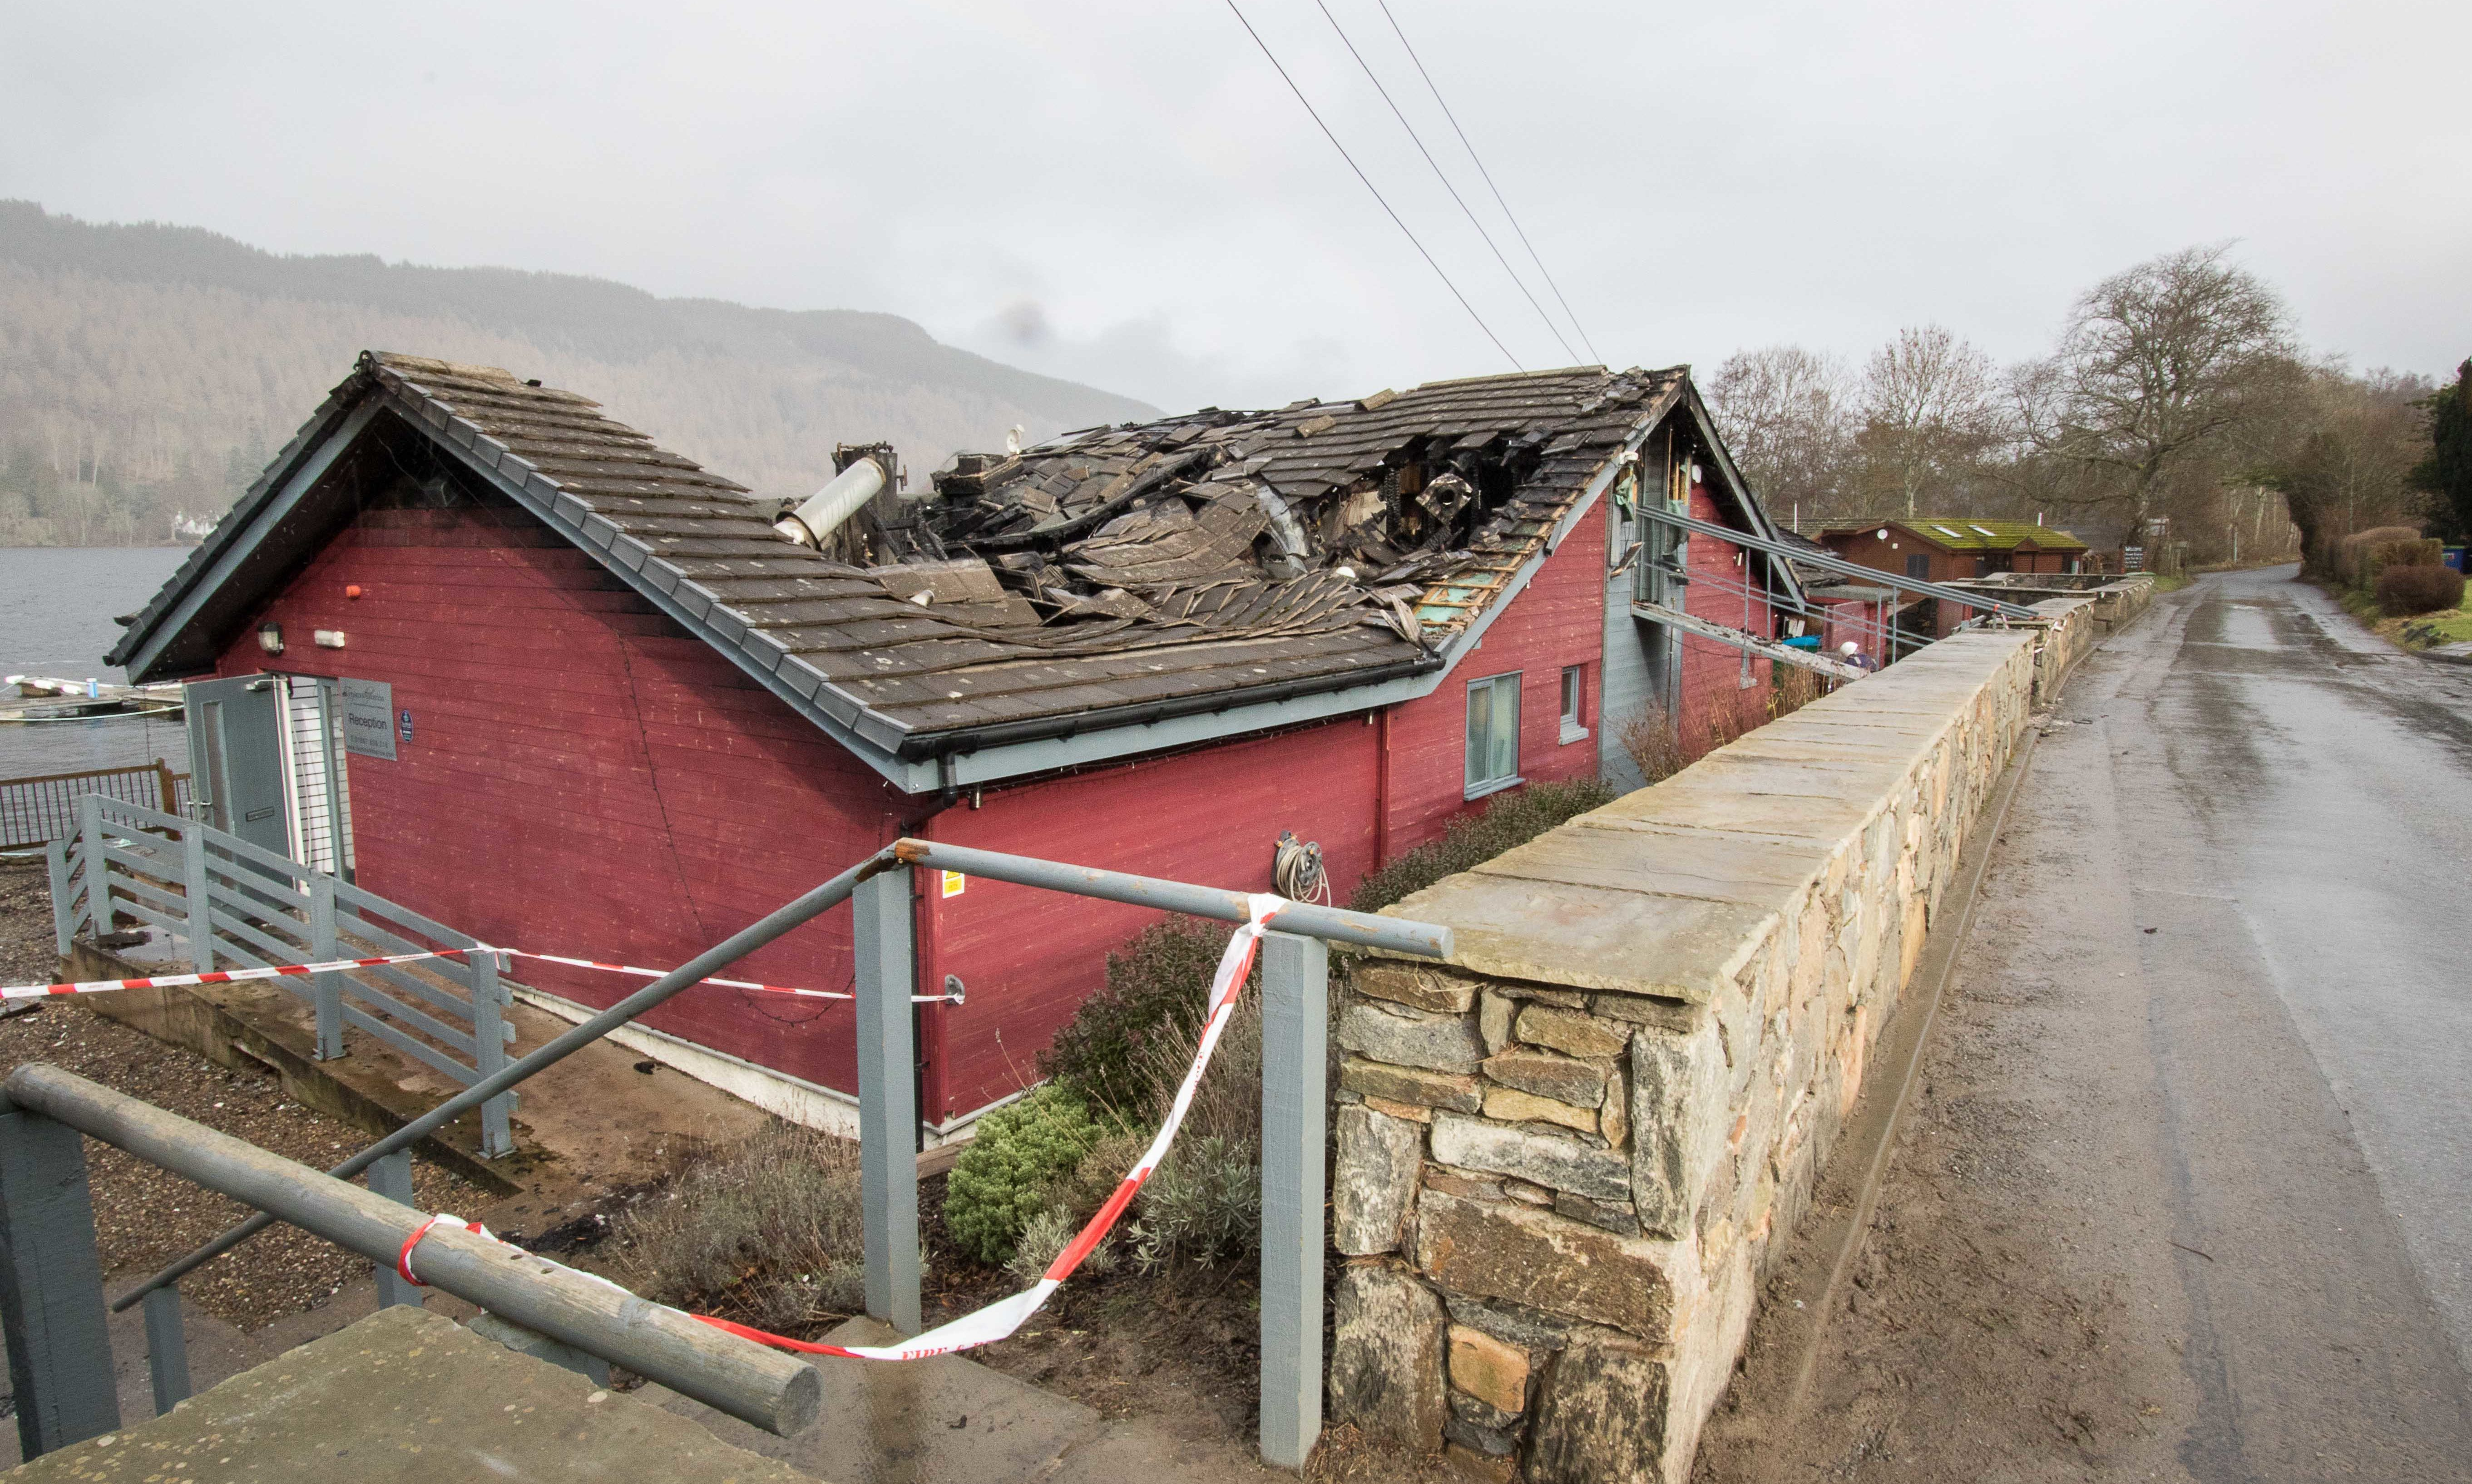 The damage done to the Taymouth Marina restaurant by yesterday's fire.